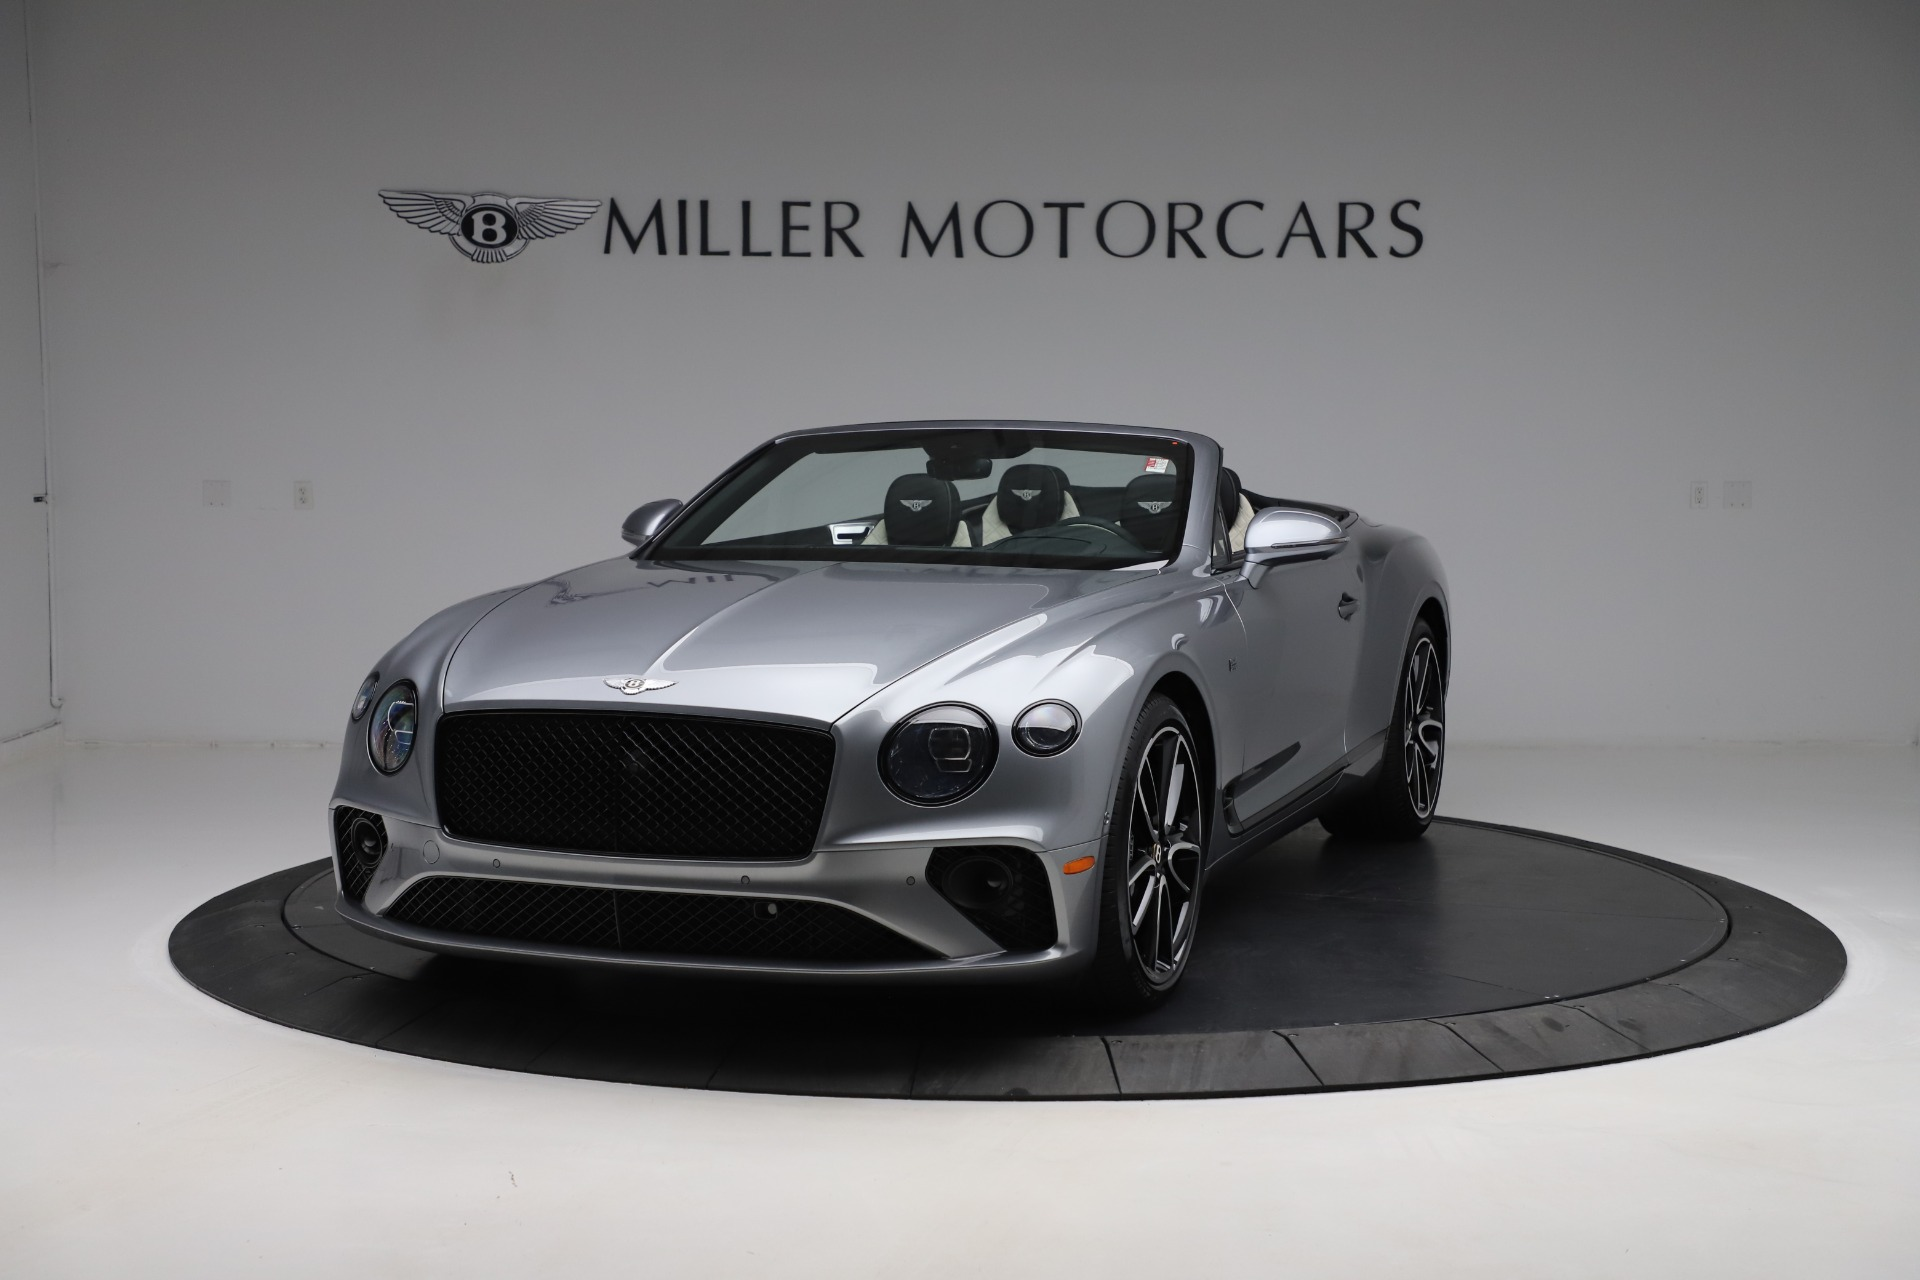 New 2020 Bentley Continental GTC W12 First Edition for sale $309,350 at Maserati of Greenwich in Greenwich CT 06830 1